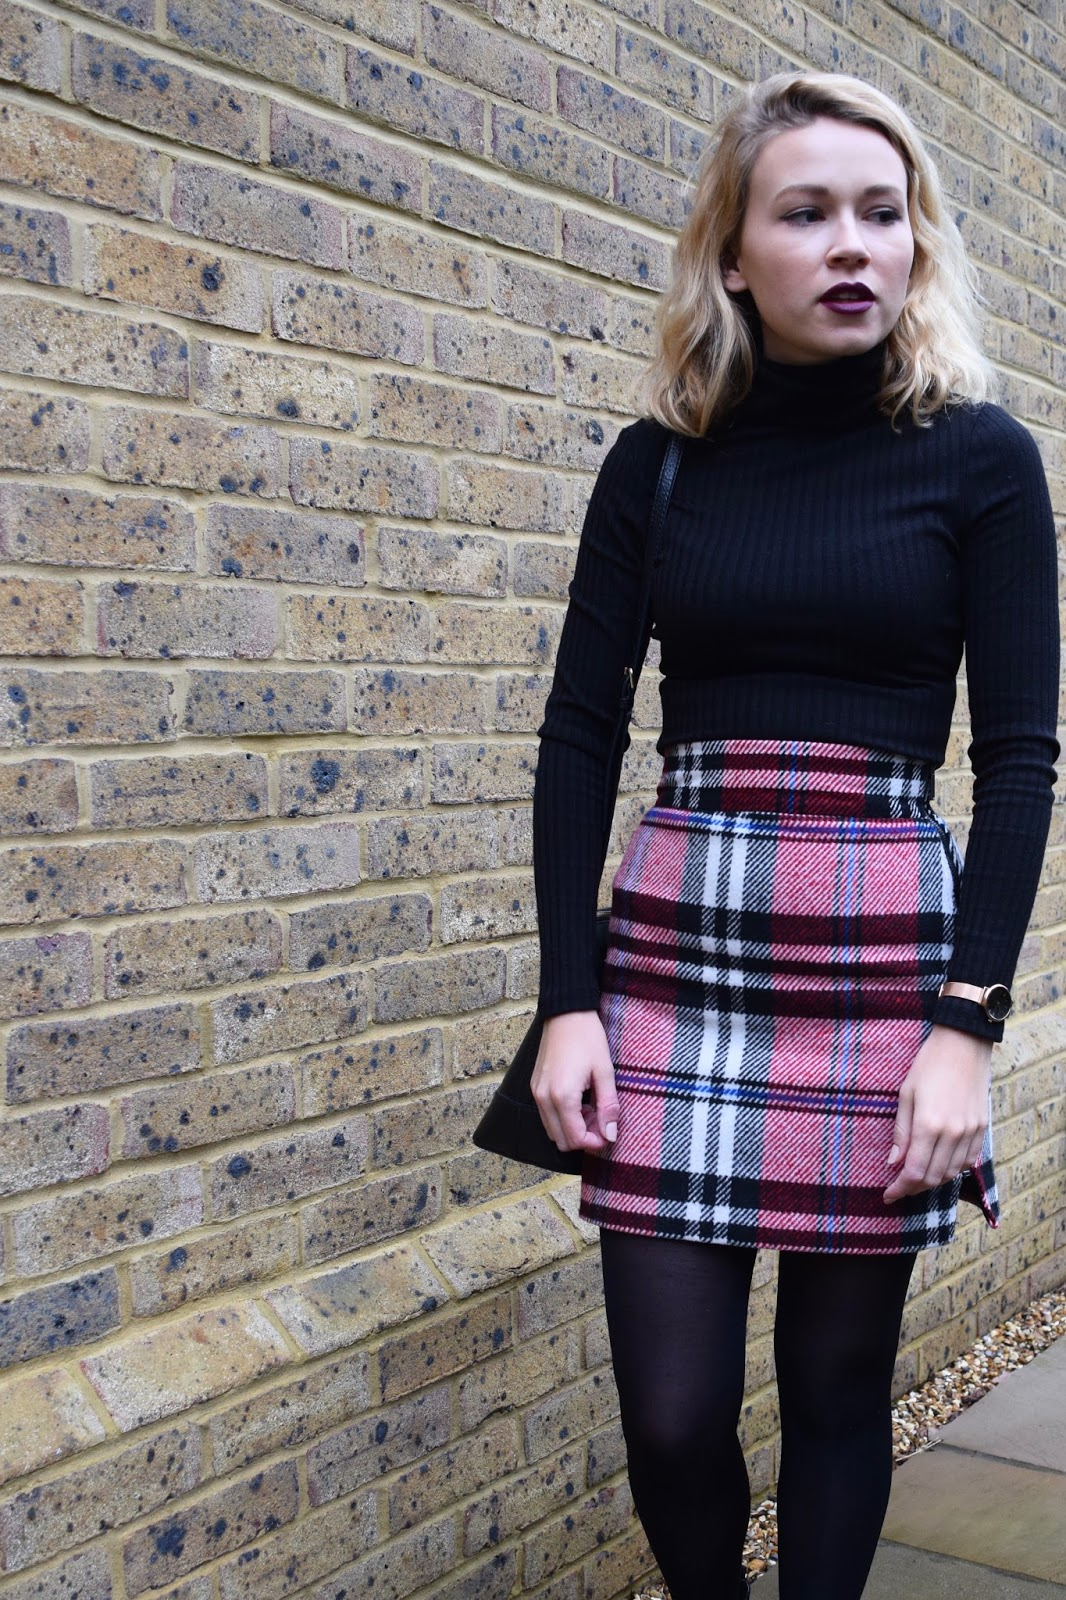 Tartan & Roll Necks: My Office #OOTD | A View from the Balcony - photo#47